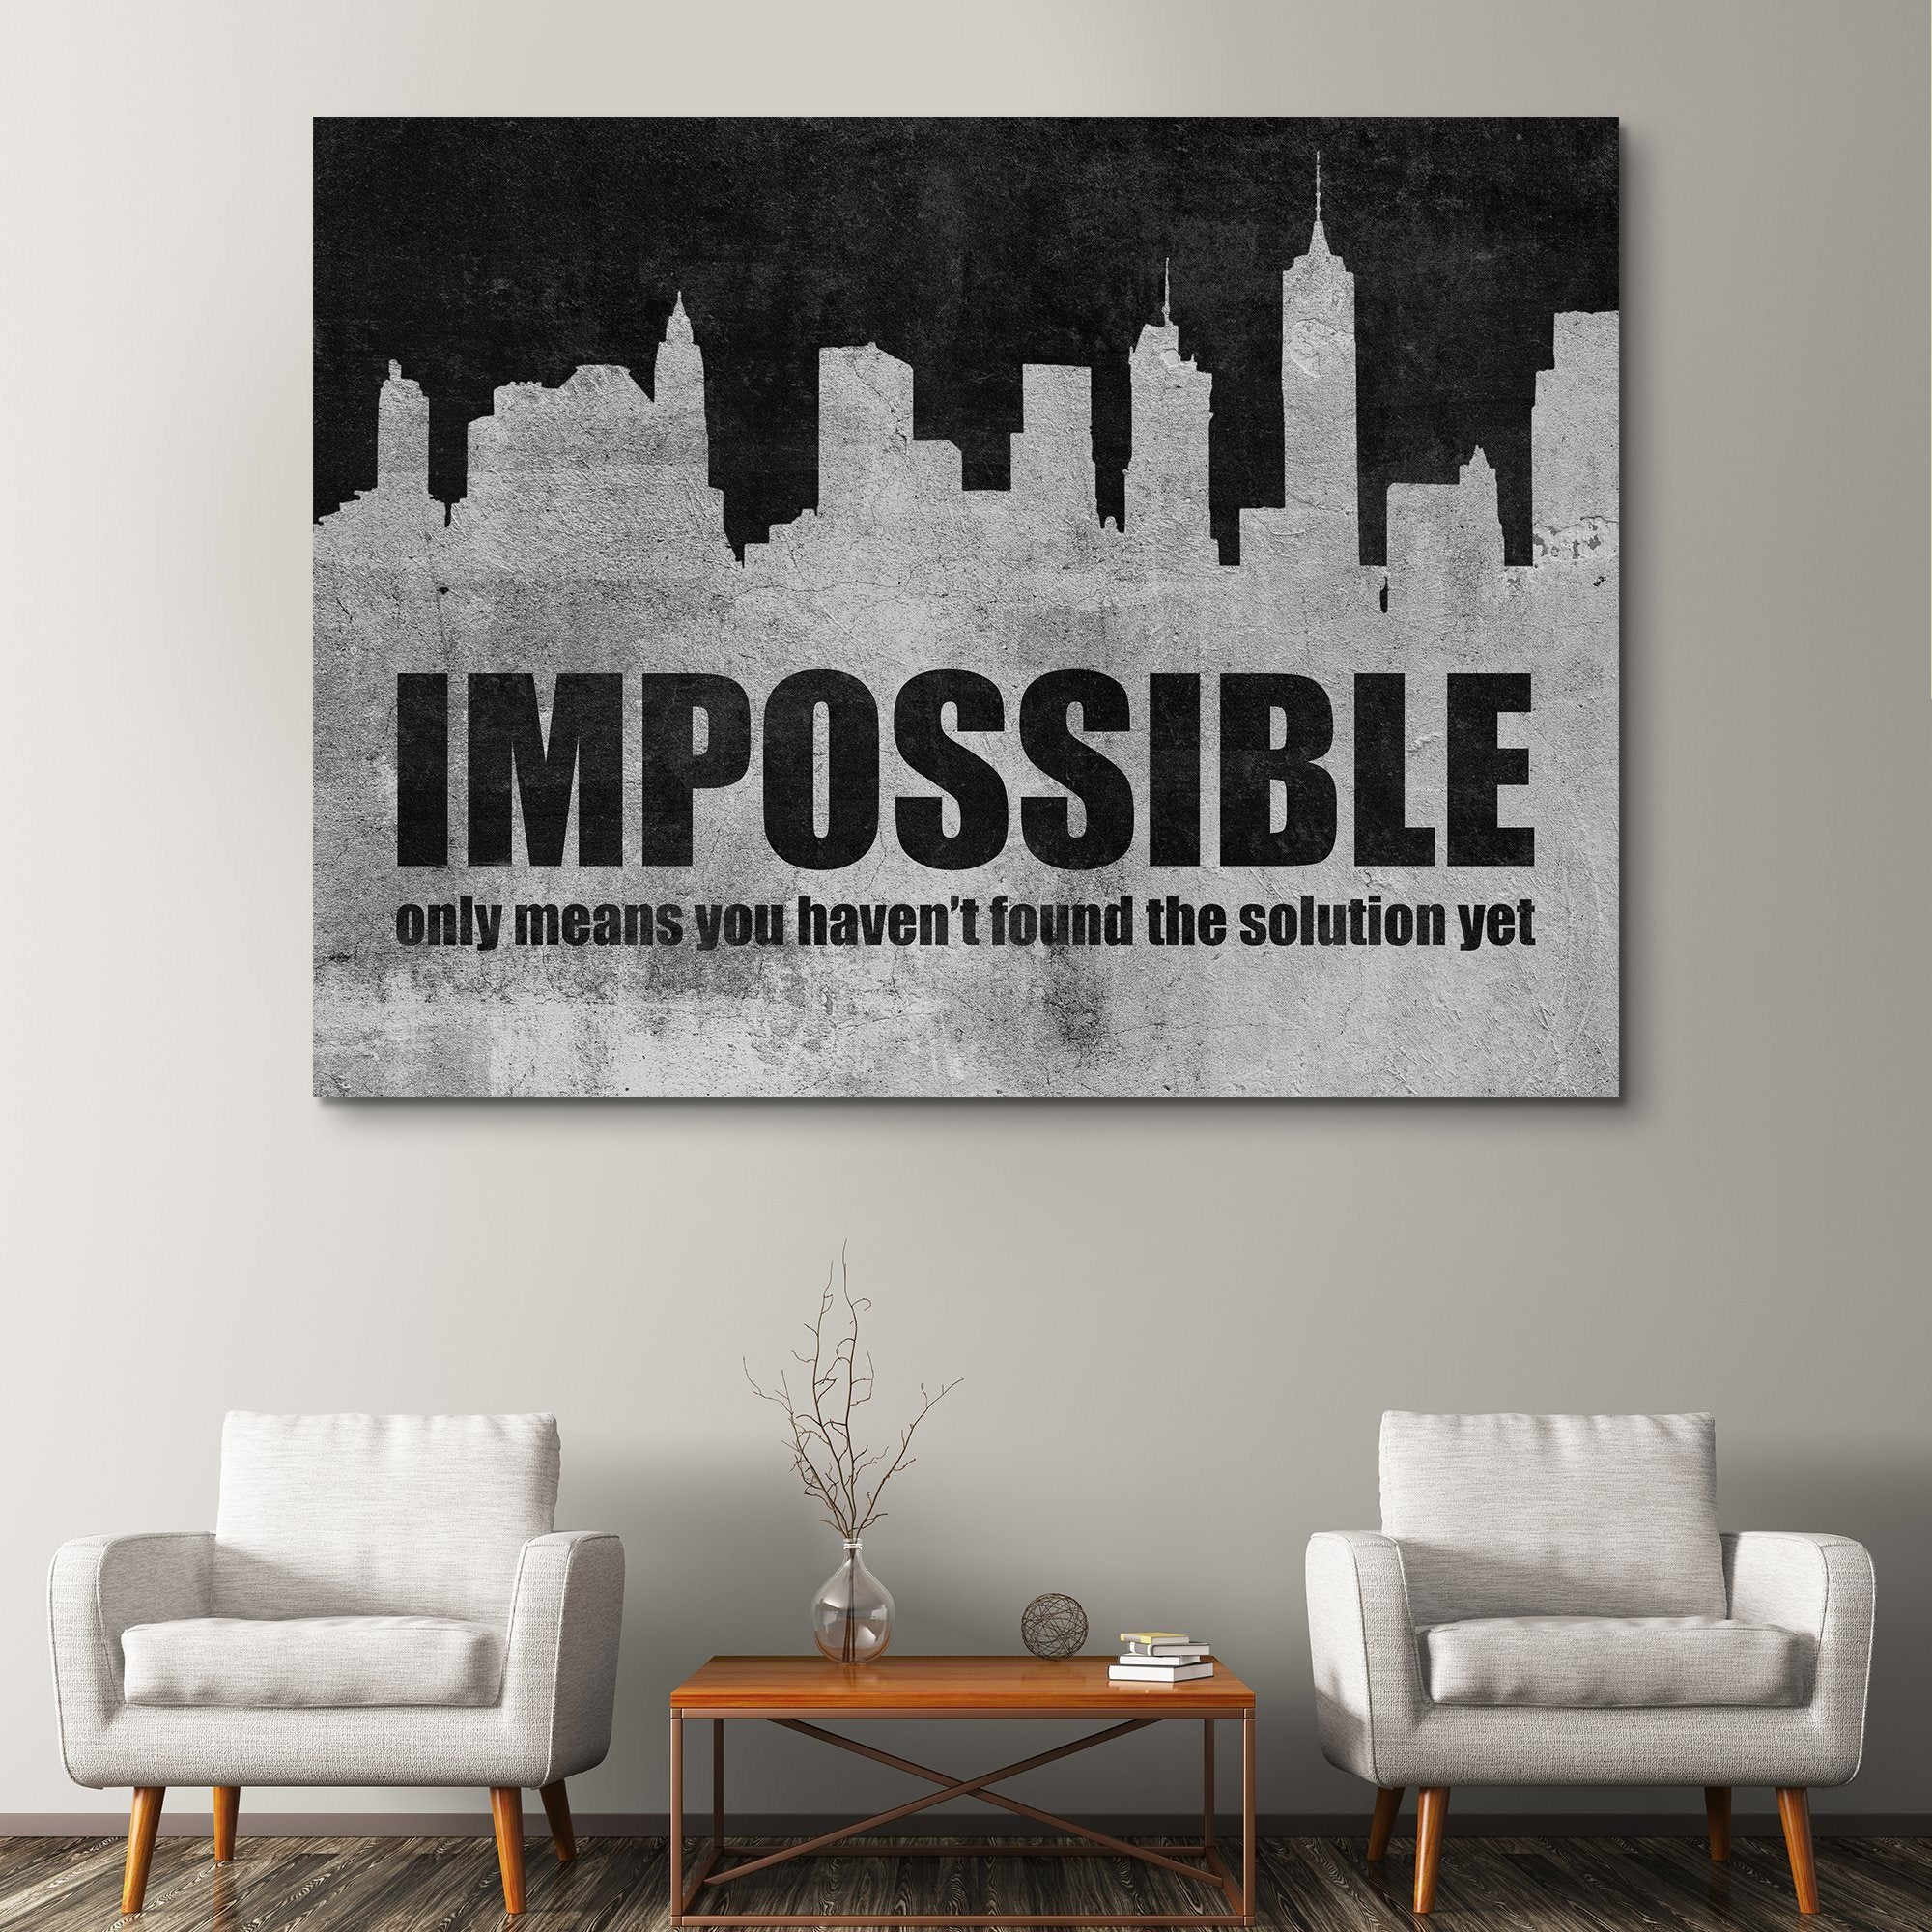 Find The Solution motivational wall art